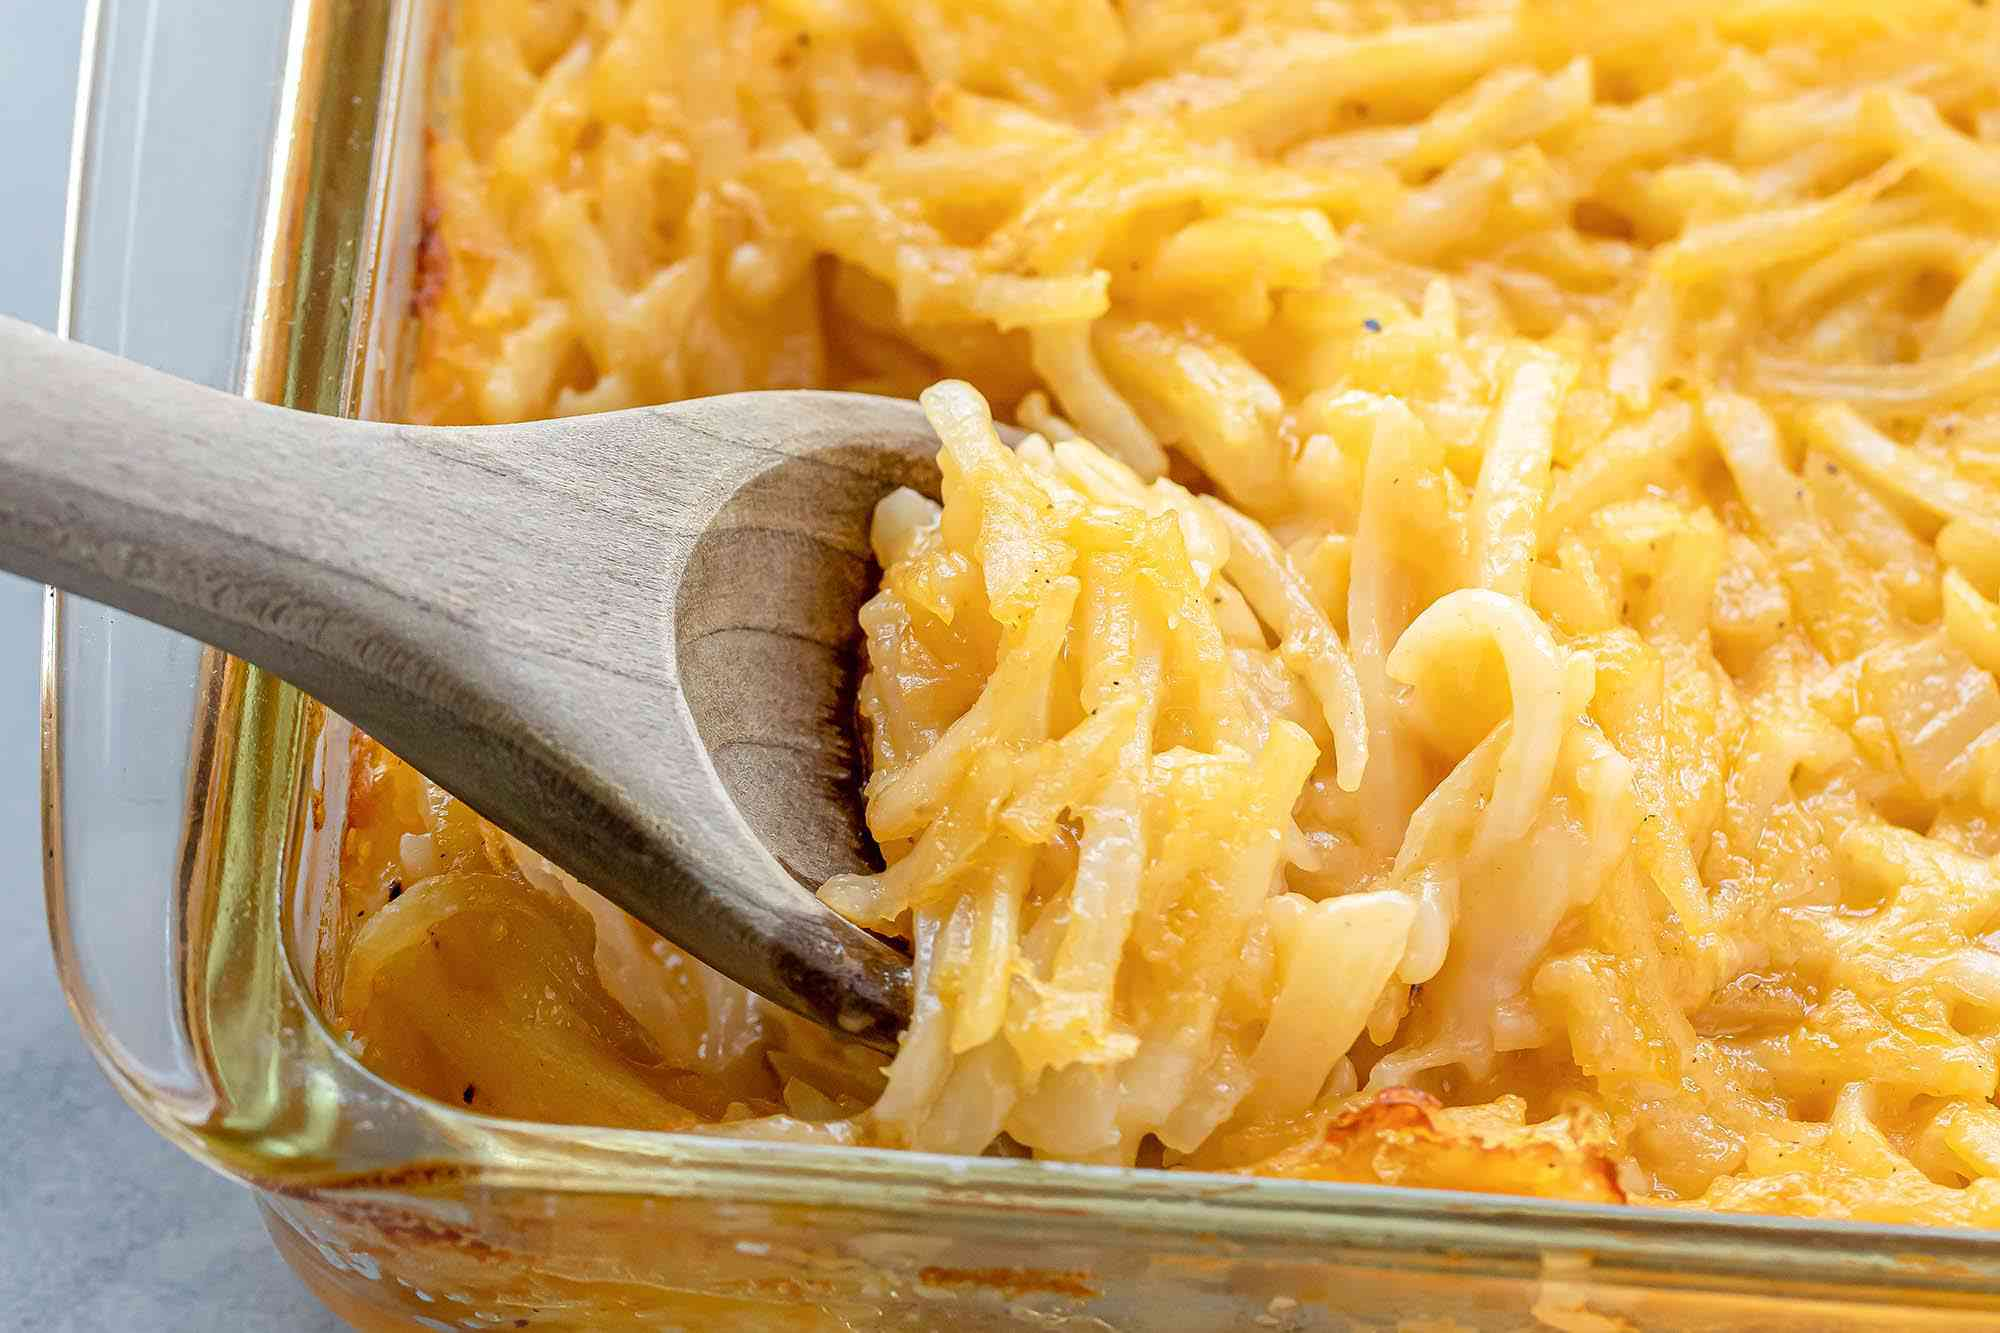 A close up side view of a glass casserole dish with a wooden spoon scooping out the potato casserole.